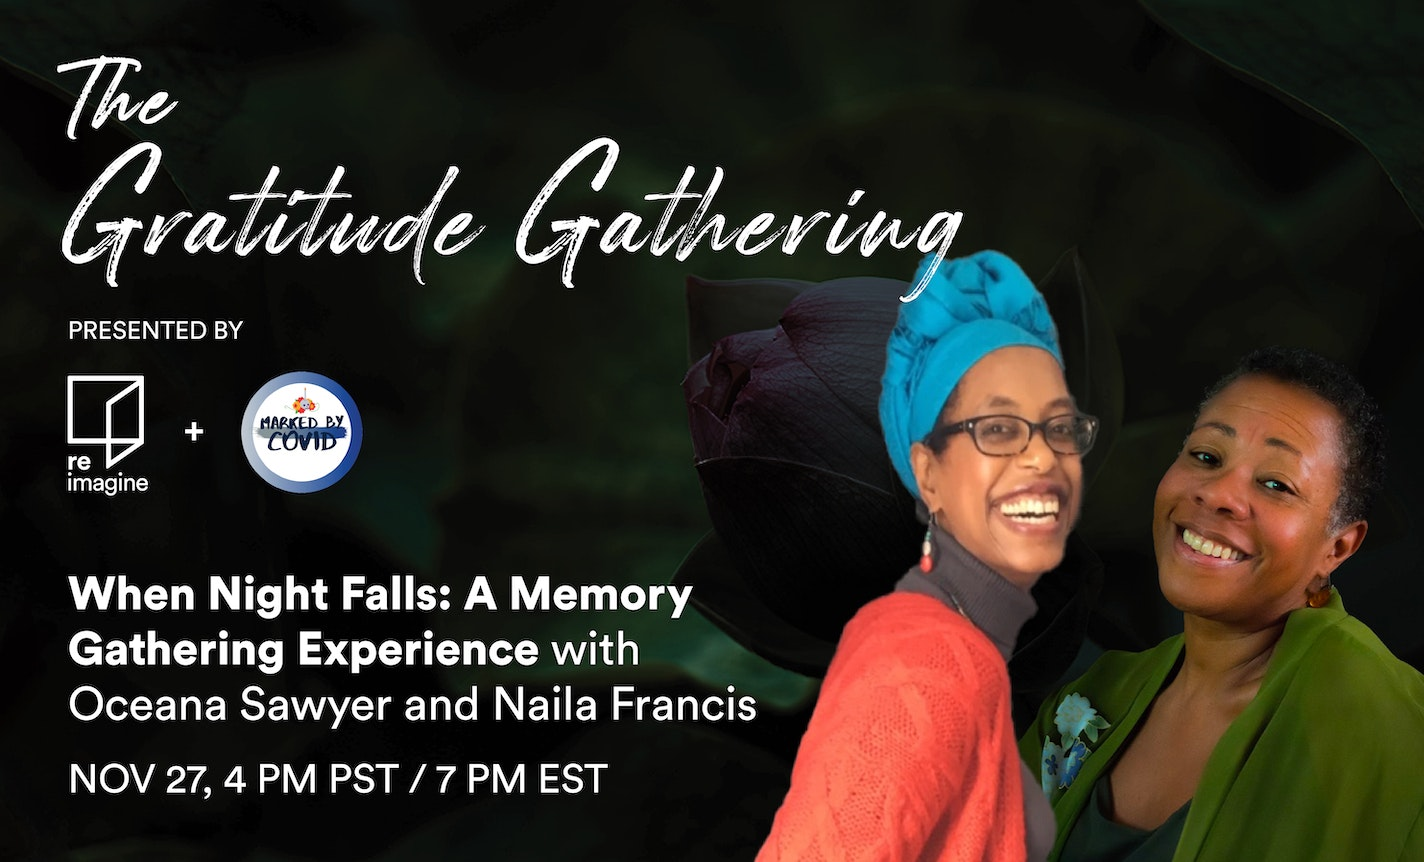 When Night Falls: A Memory Gathering Experience